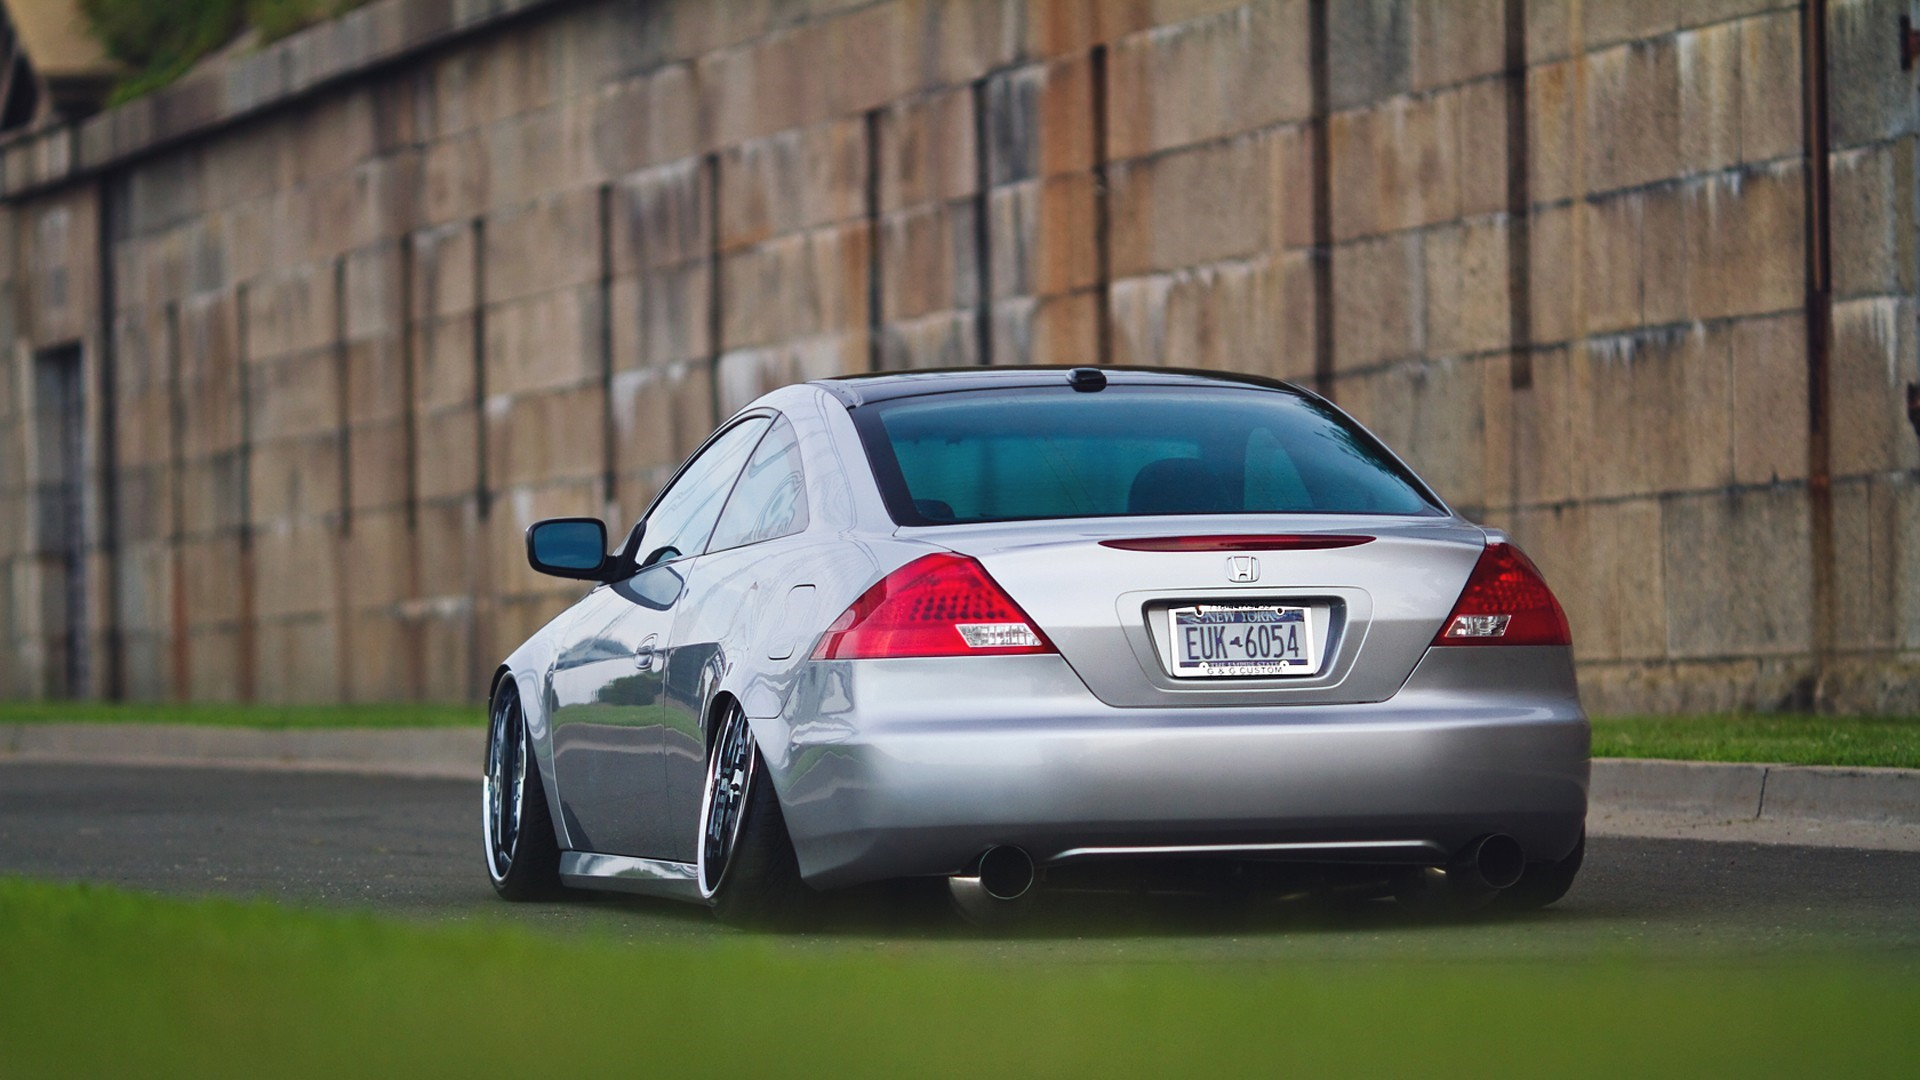 05 Acura RL Slammed Honda HD Car Wallpaper HD Wallpapers 1920x1080